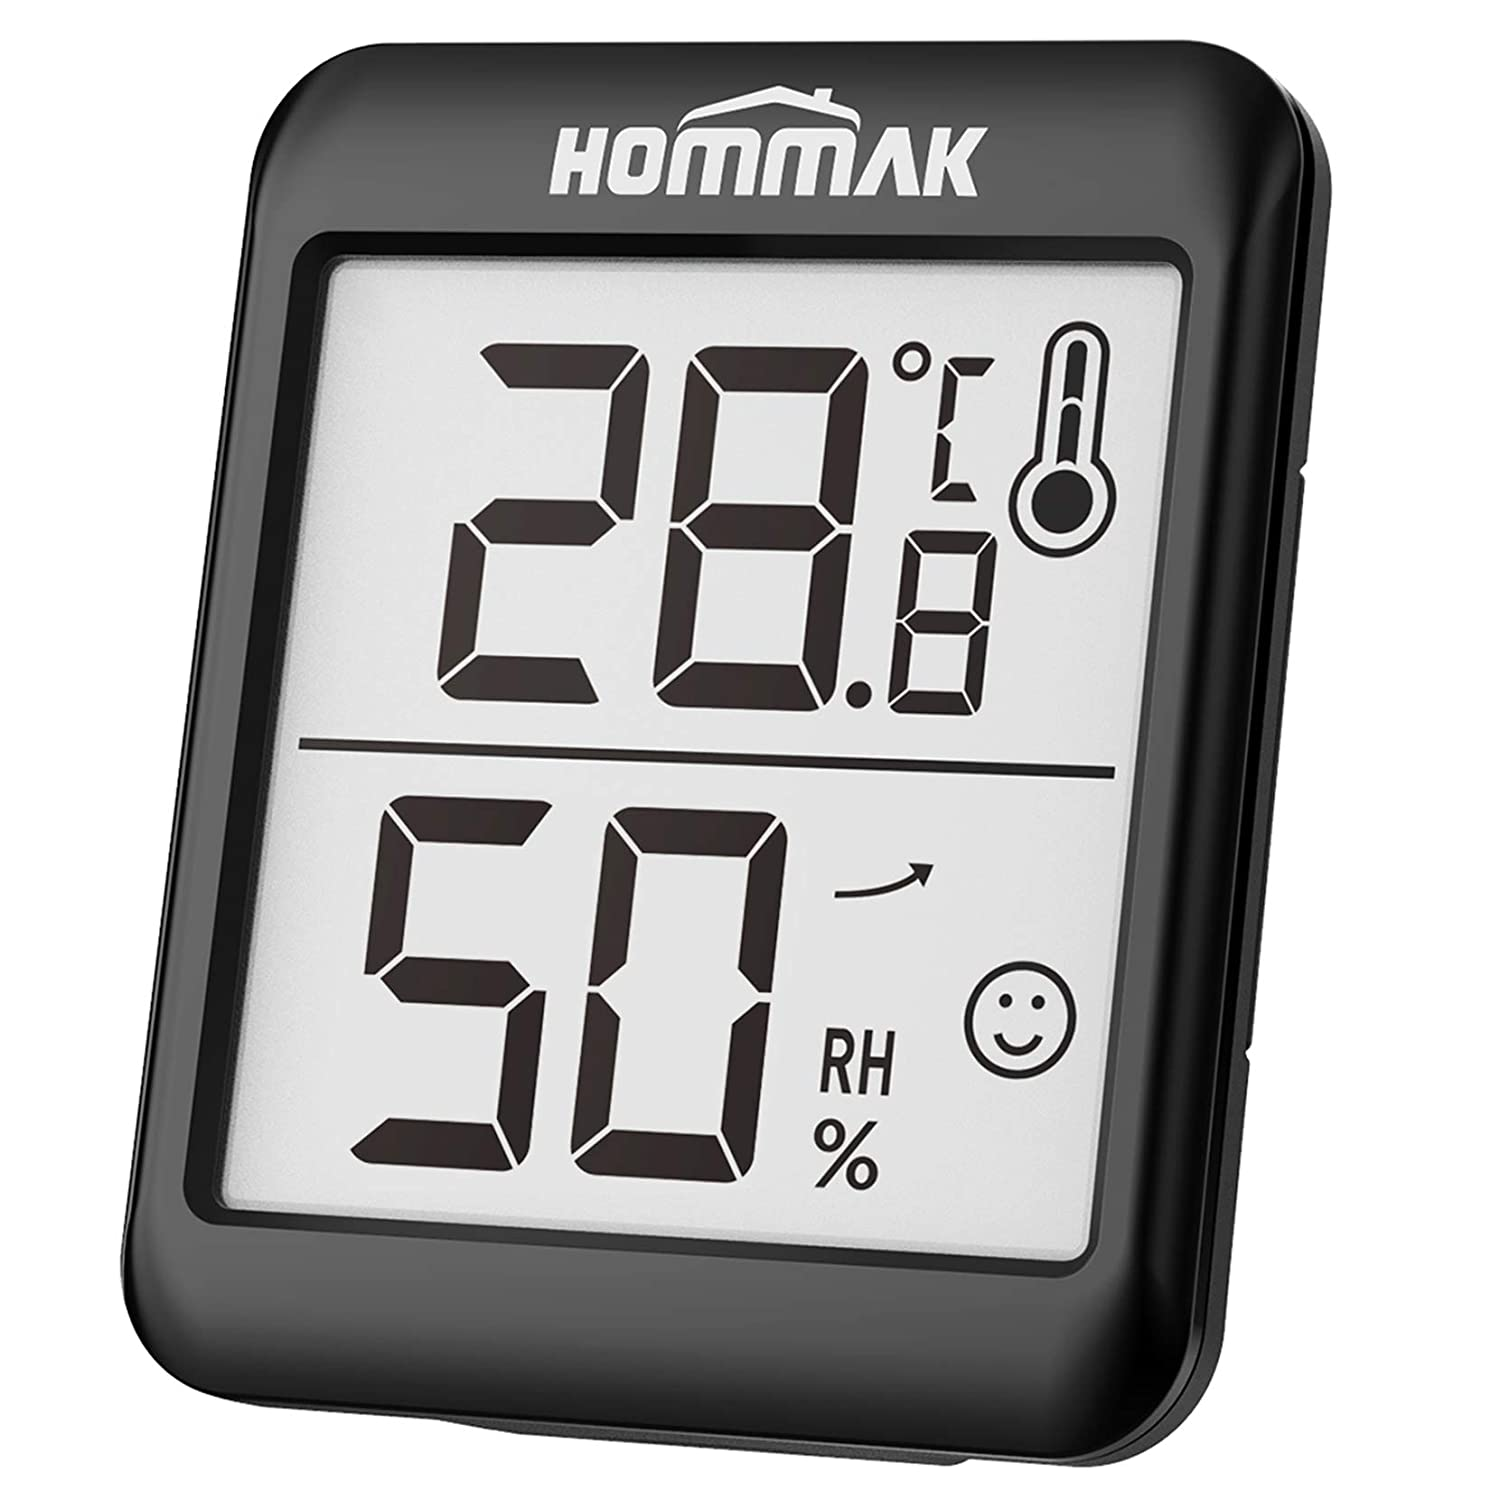 Hommak Indoor Room Thermometer Digital Hygrometer Humidity Meter, Temperature Monitor with High Accuracy, 2.3 Inch Large Display, Humidity Trendline, Black, for Kitchen Home Garage Warehouse